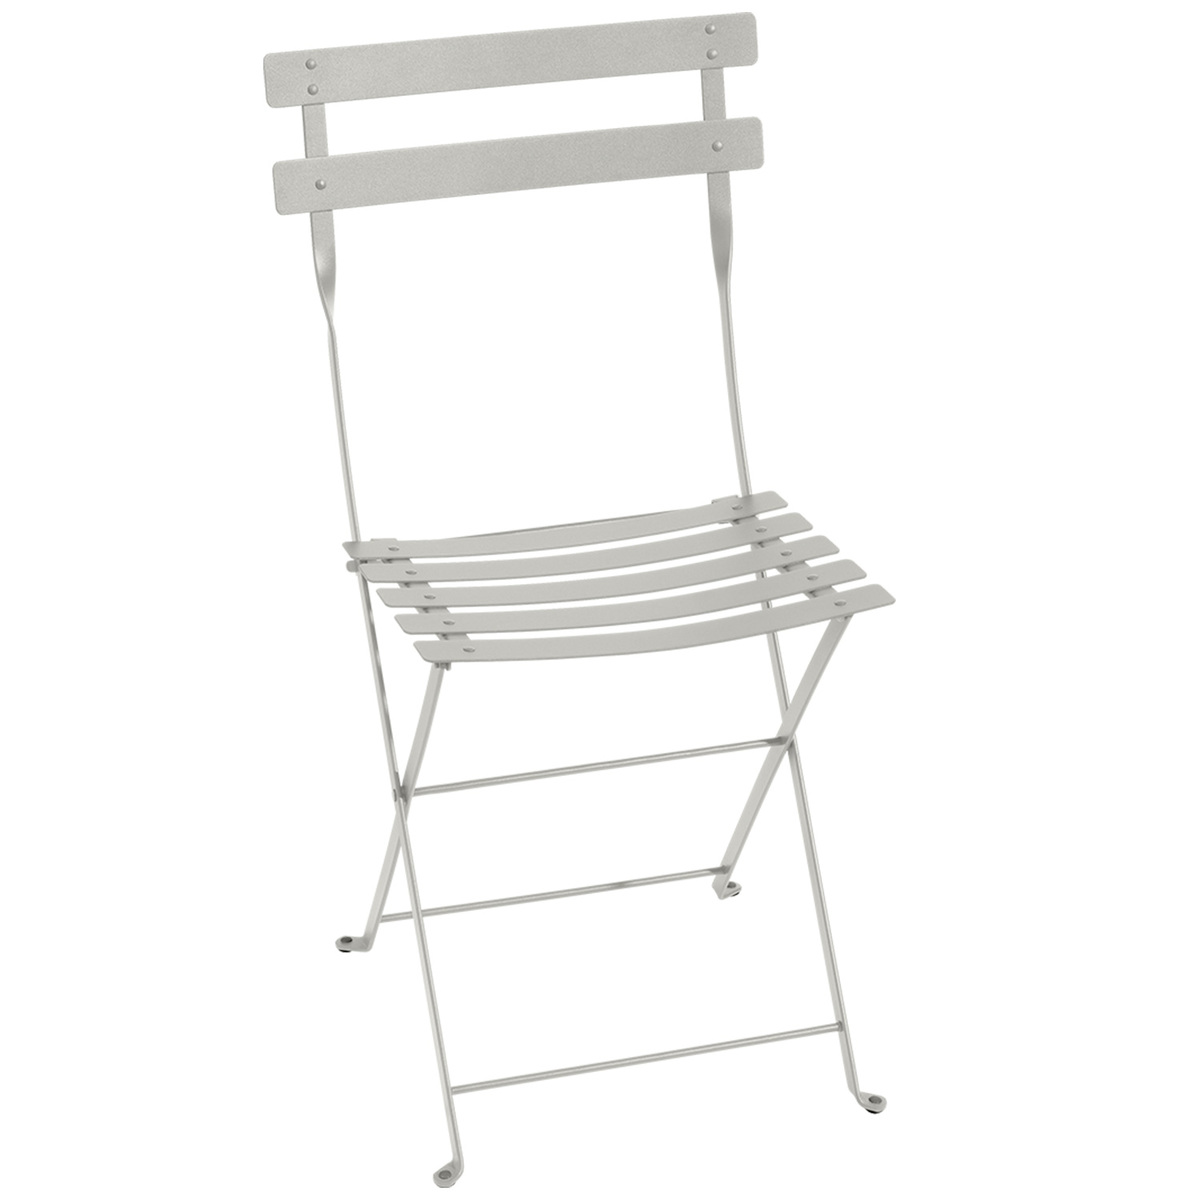 Fermob Bistro Metal chair, clay grey from Fermob